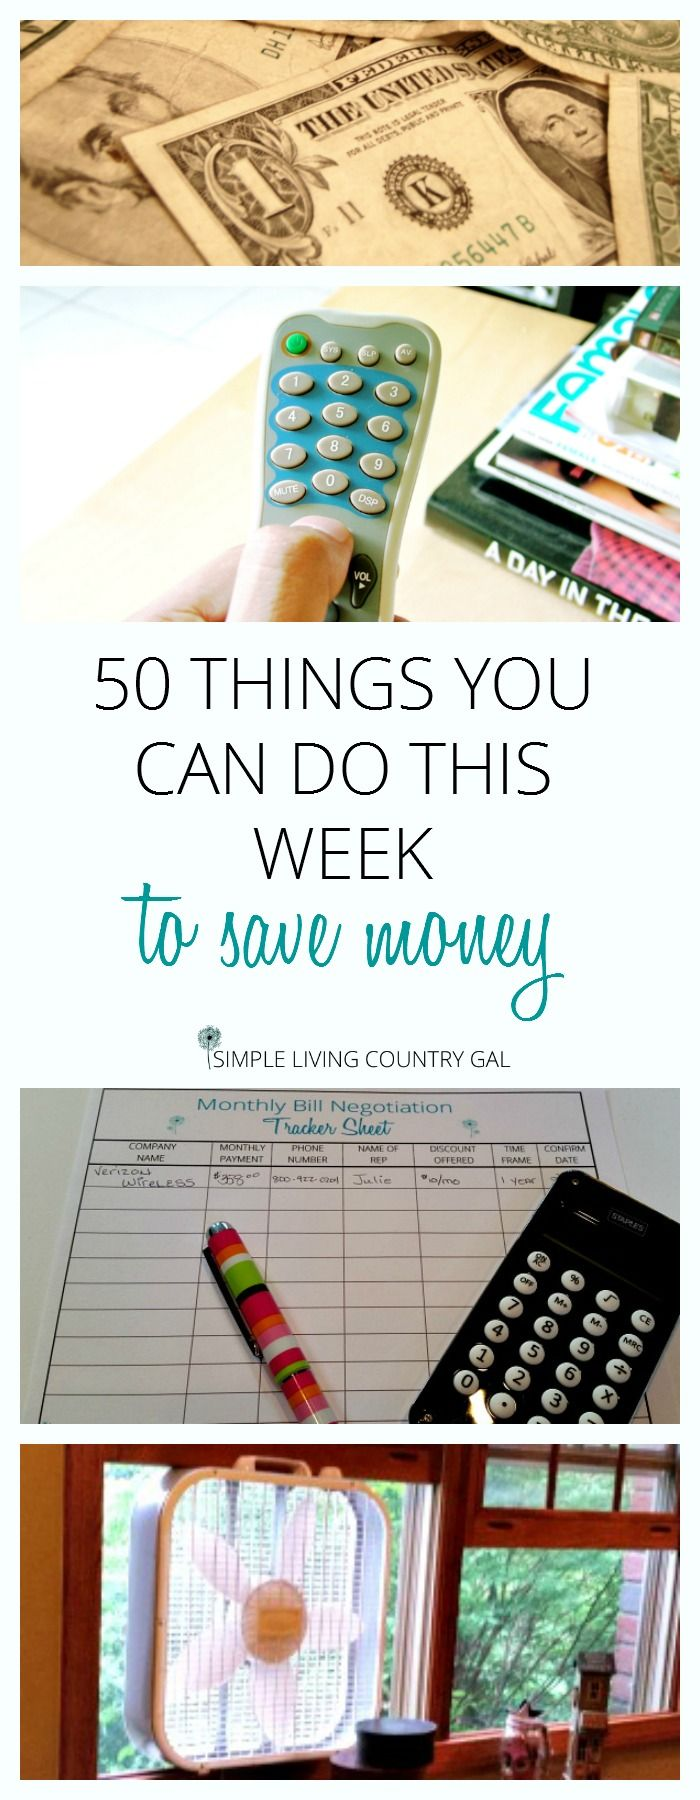 50 ways to save money that you can do right now. Some silly simple some more involved but all are things we are doing right now to save money!  via @SLcountrygal